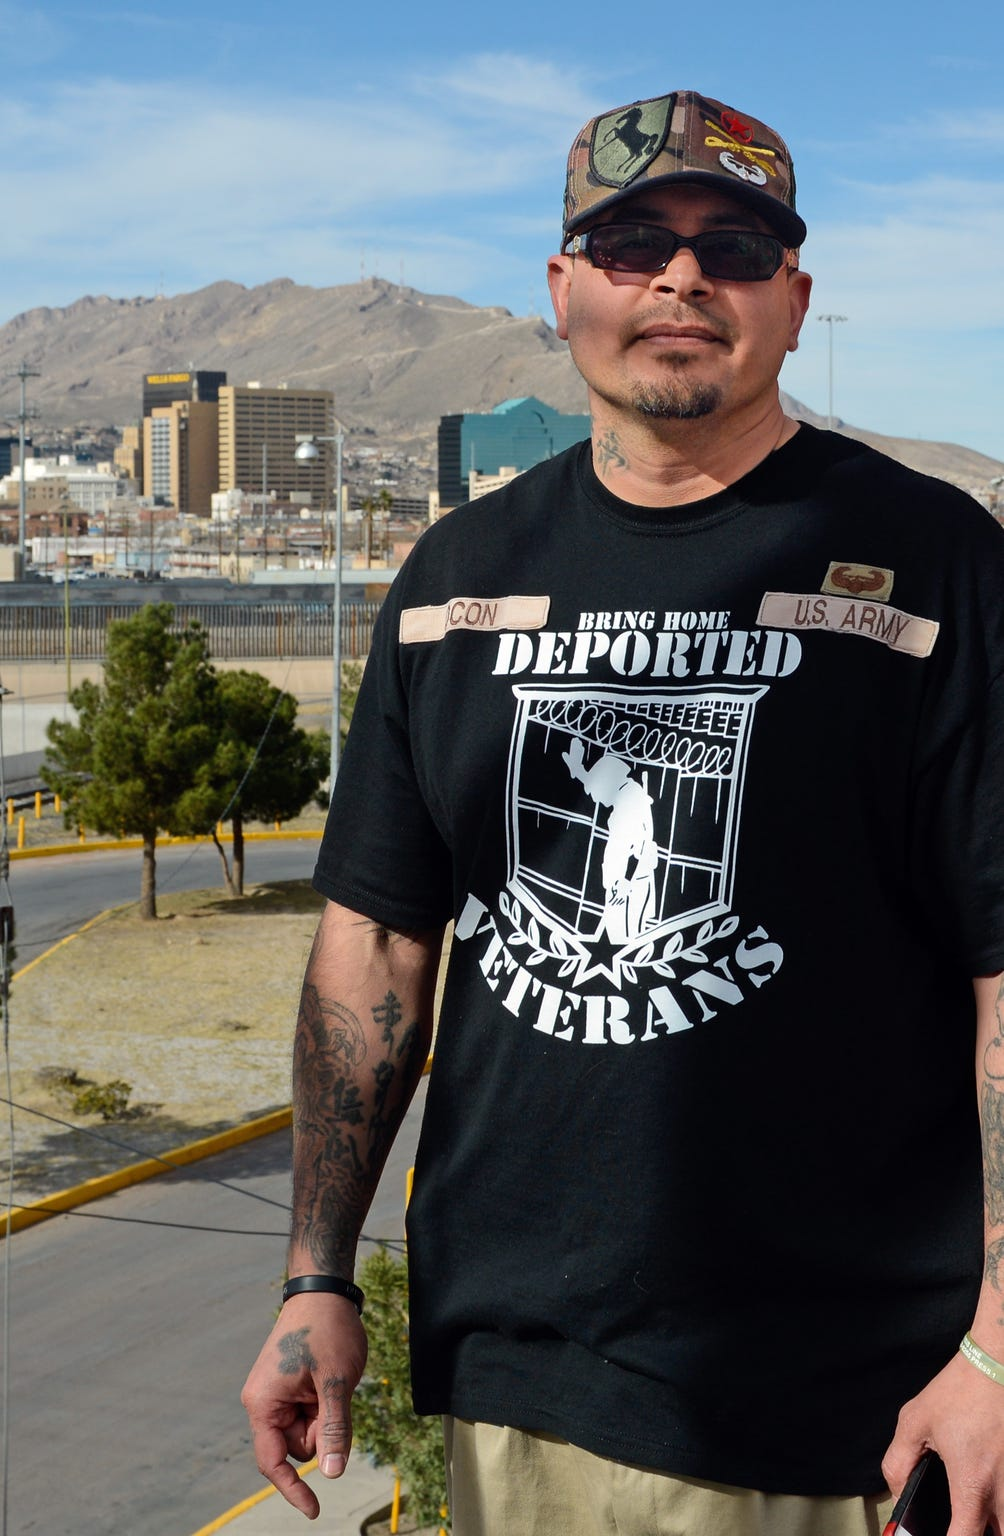 Ivan Ocon in Juárez, where he has lived since being deported from the United States in 2016, with the skyline of El Paso in the background. He longs to return to the United States.